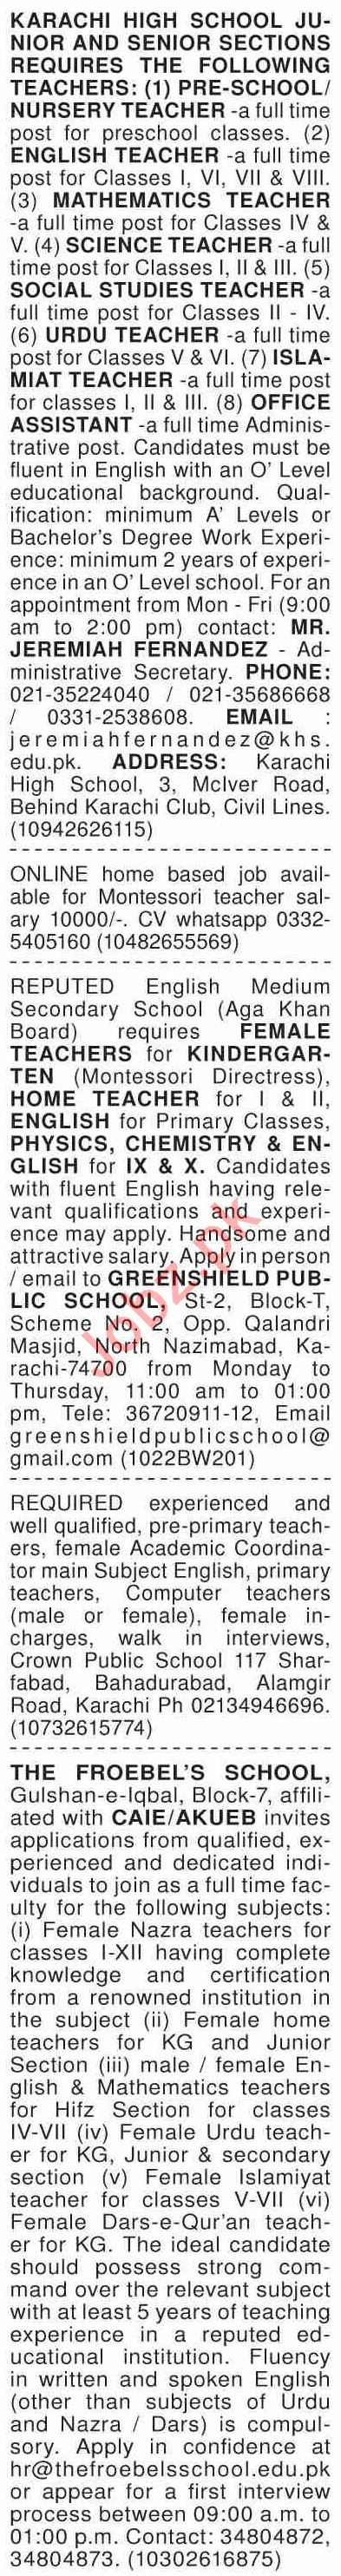 Dawn Sunday Classified Ads 13 June 2021 for Teaching Staff